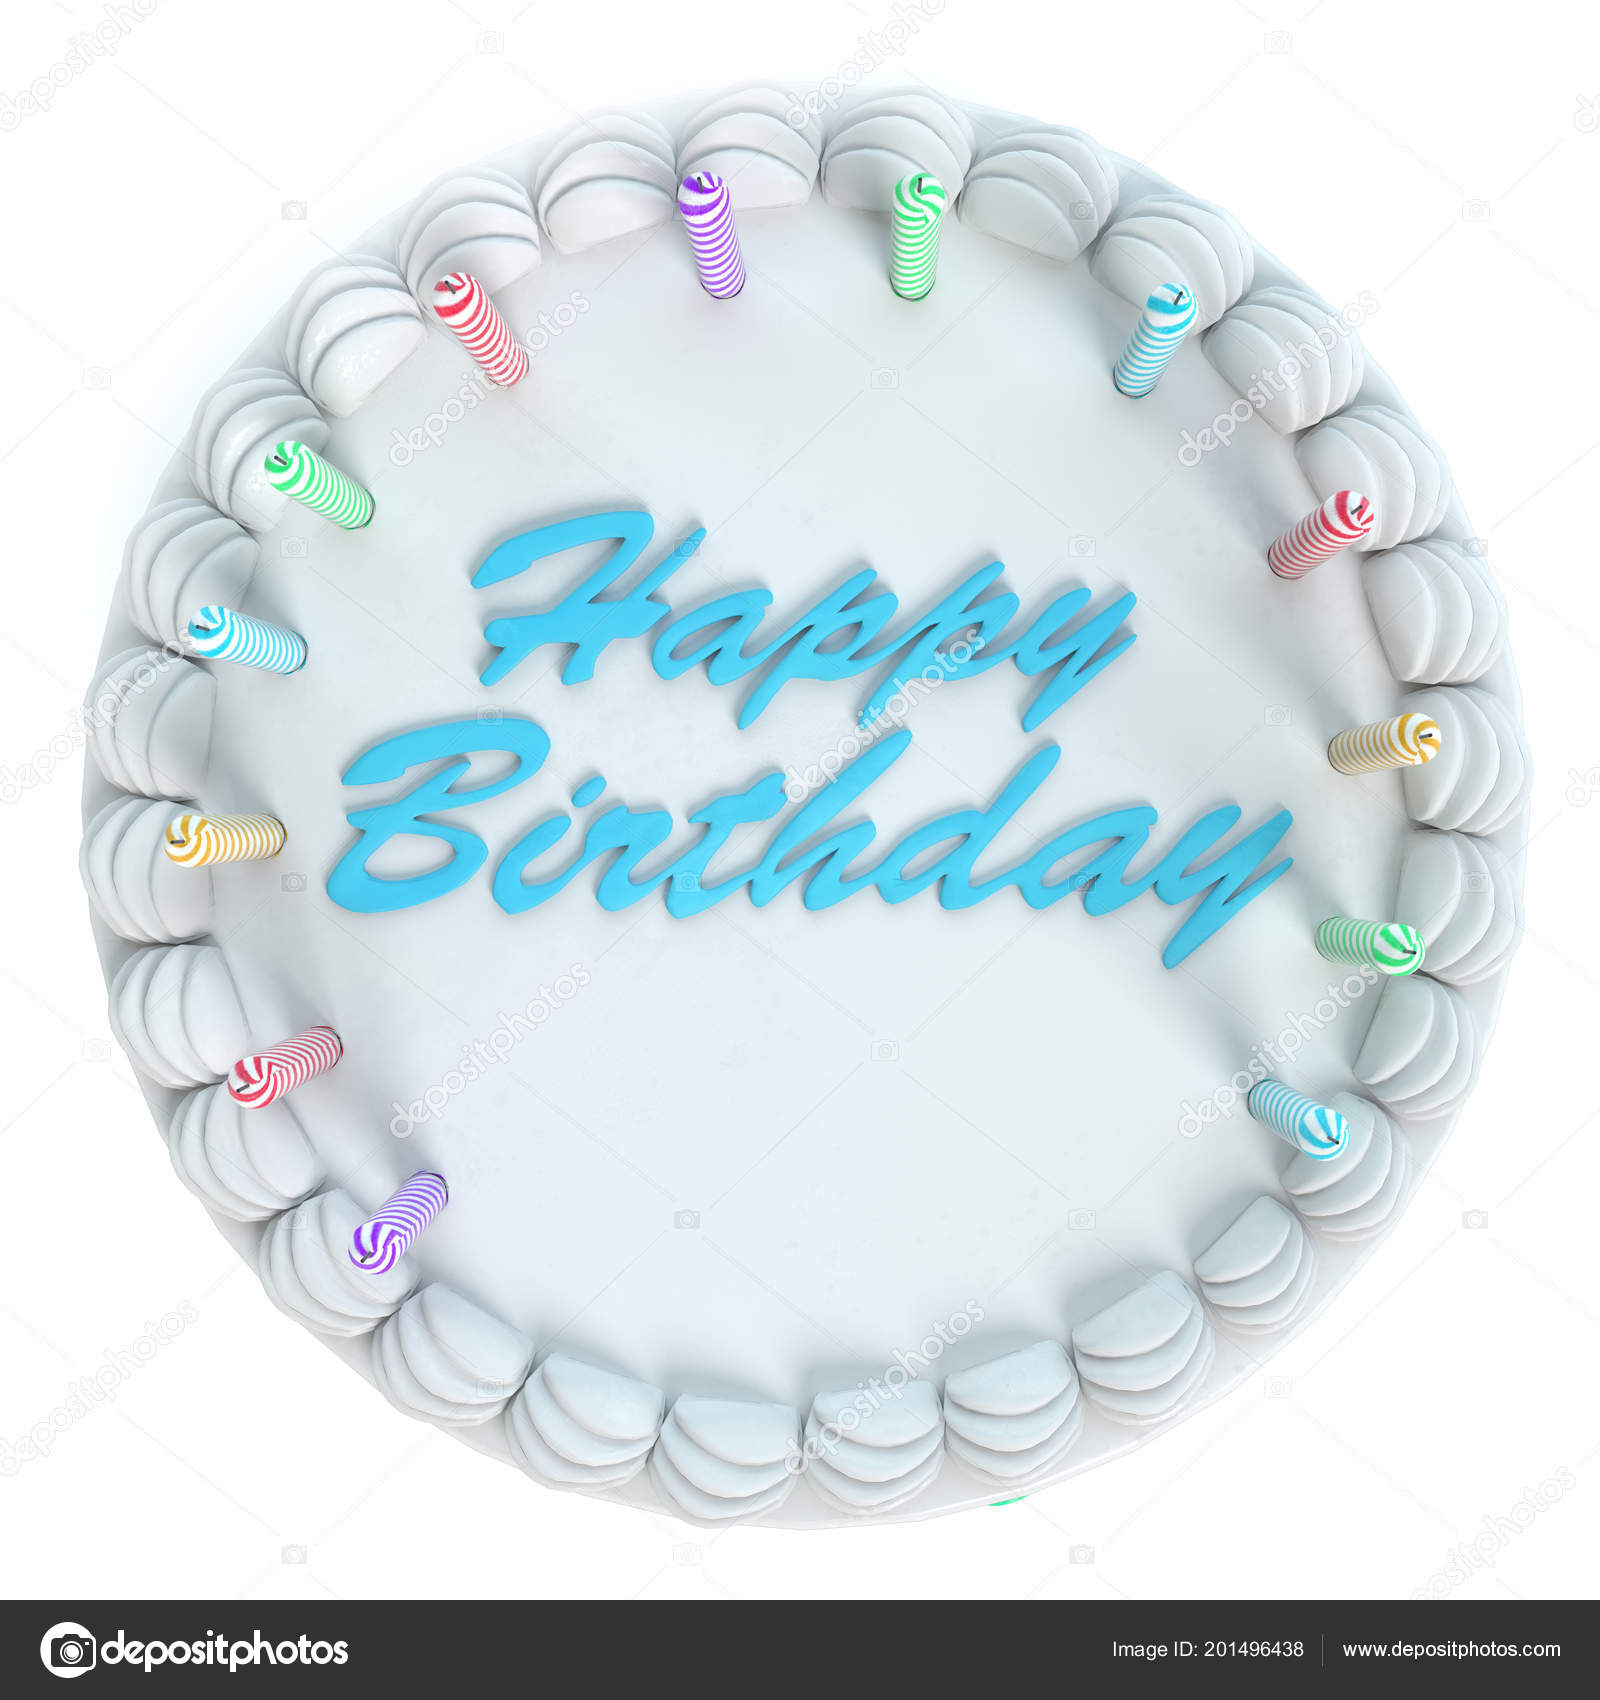 Enjoyable Birthday Cake Top View Illustration Birthday Cake Top View Personalised Birthday Cards Veneteletsinfo